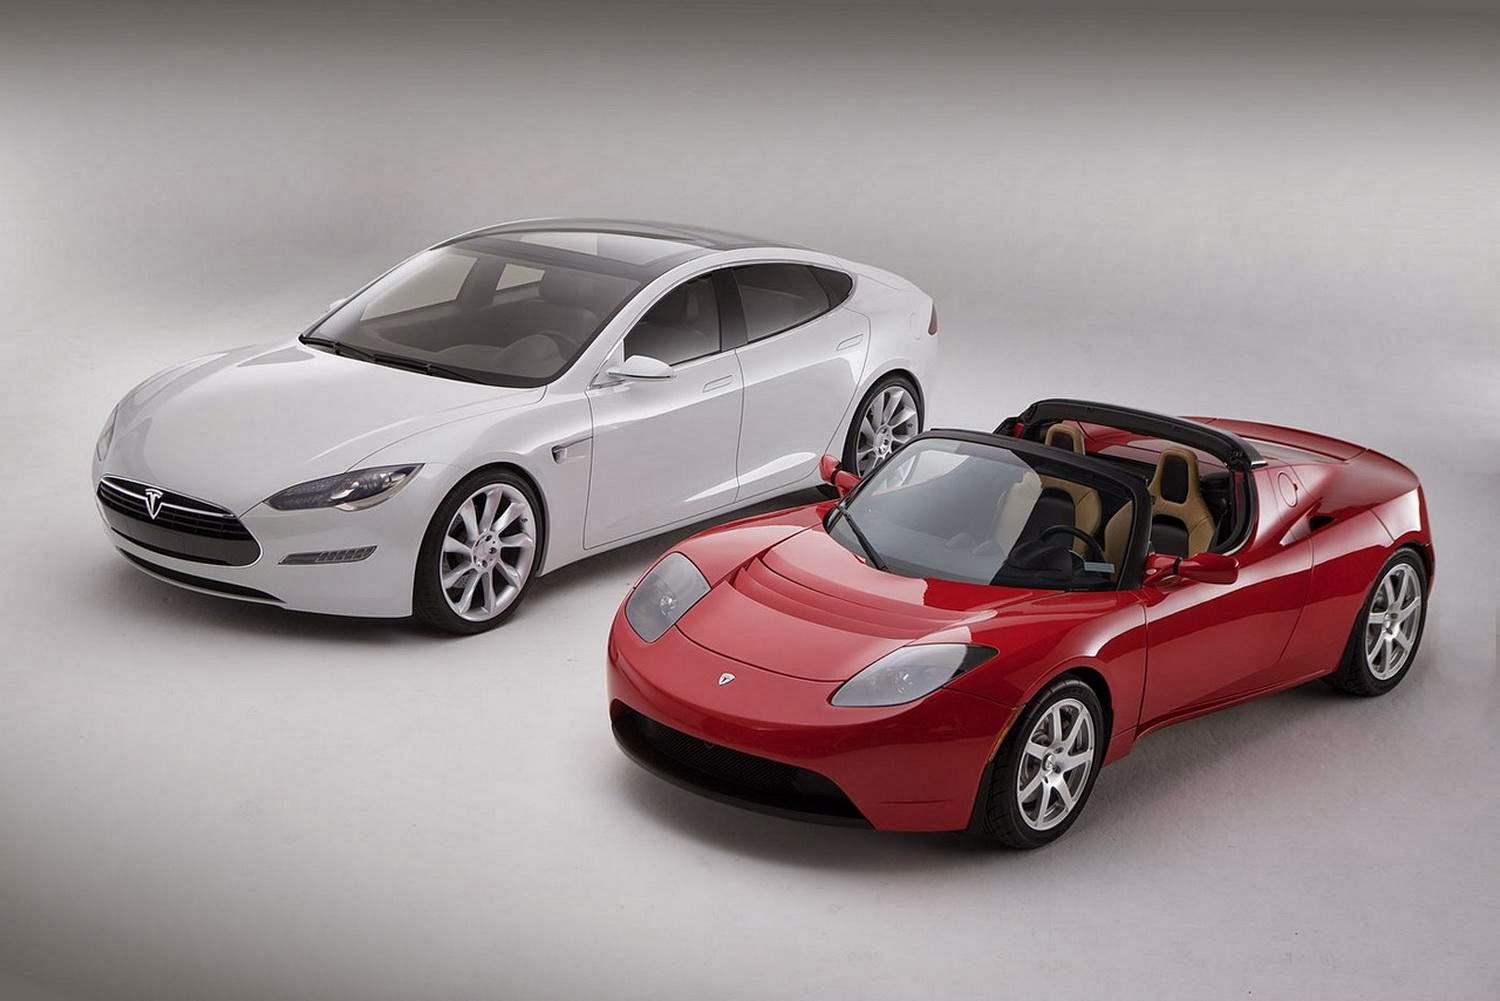 Tesla Model S Information & Images